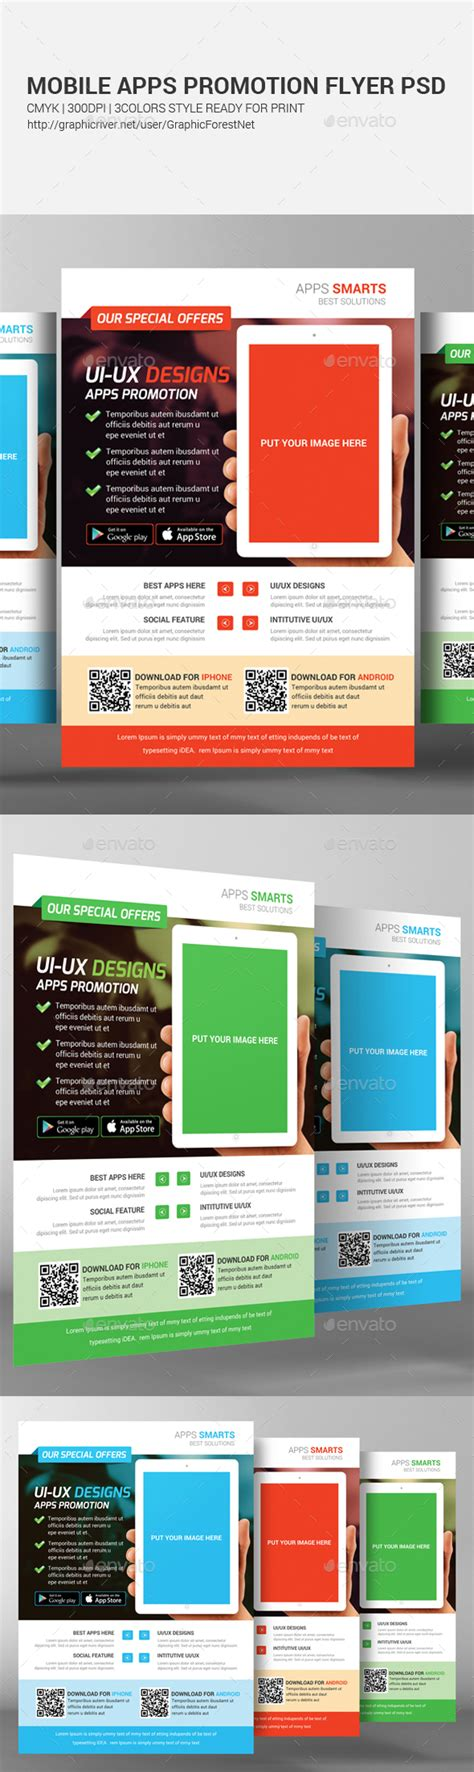 flyer design app for iphone mobile apps promotion flyer template promotion